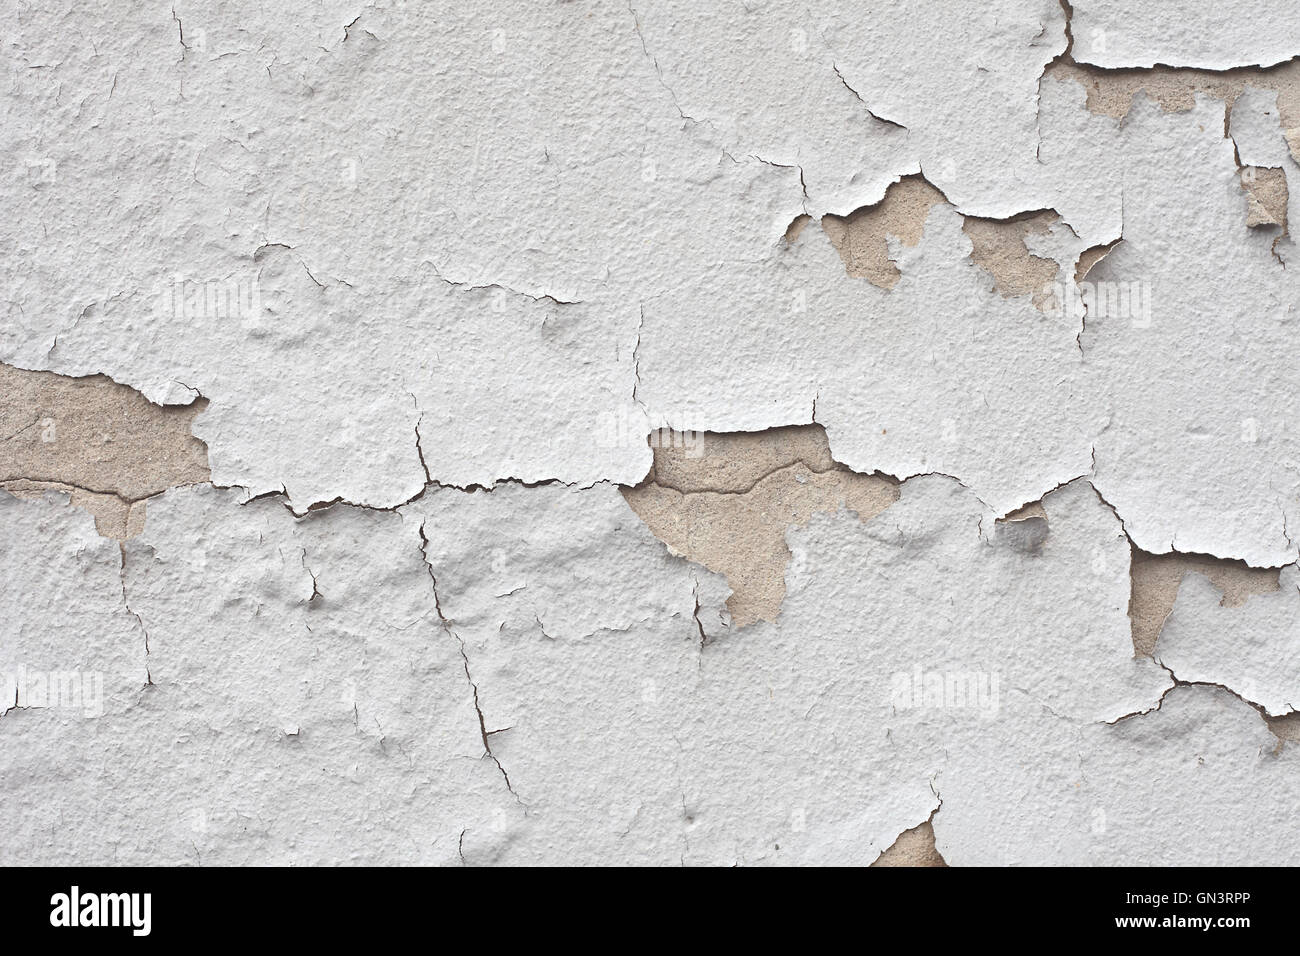 Cracked wall texture - Stock Image